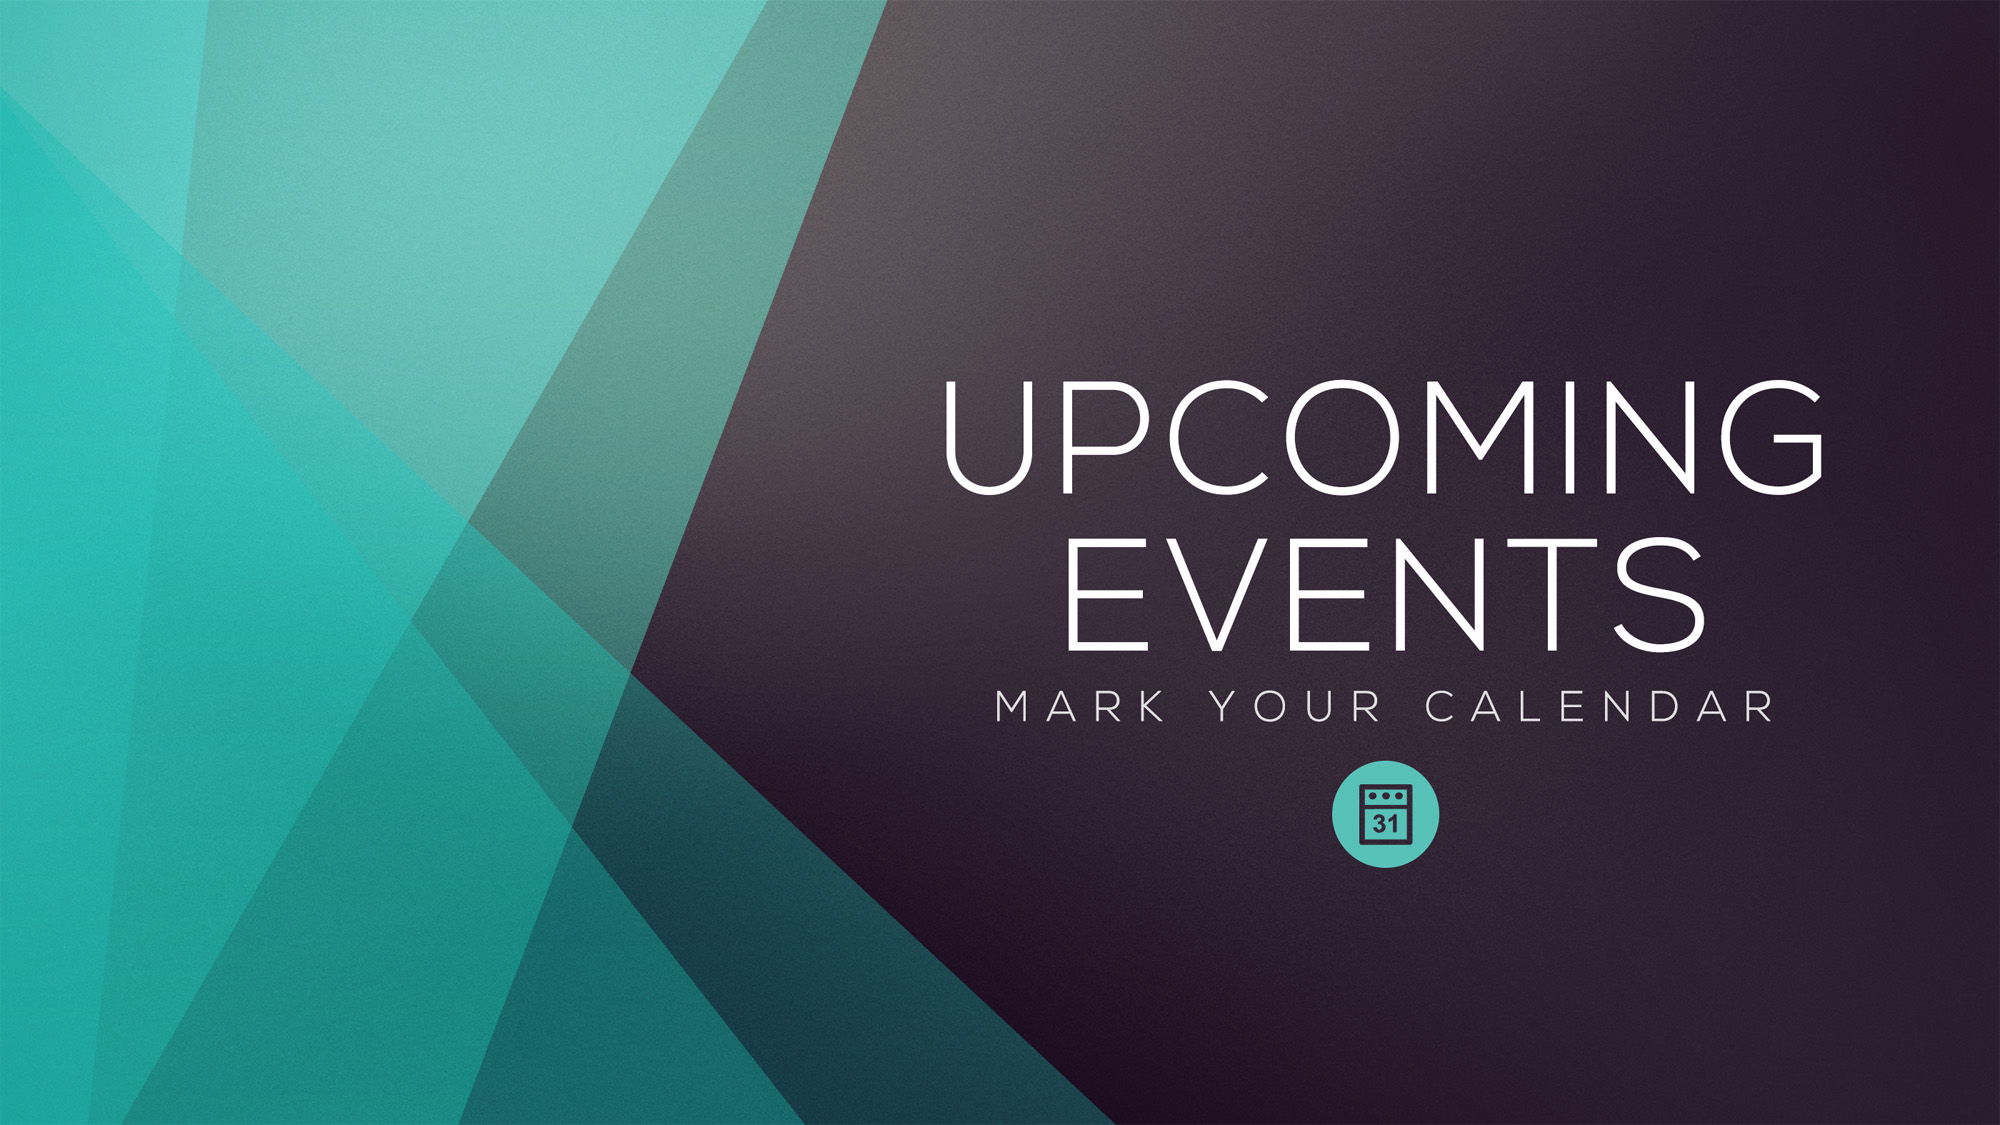 Use events to increase your hotel revenue